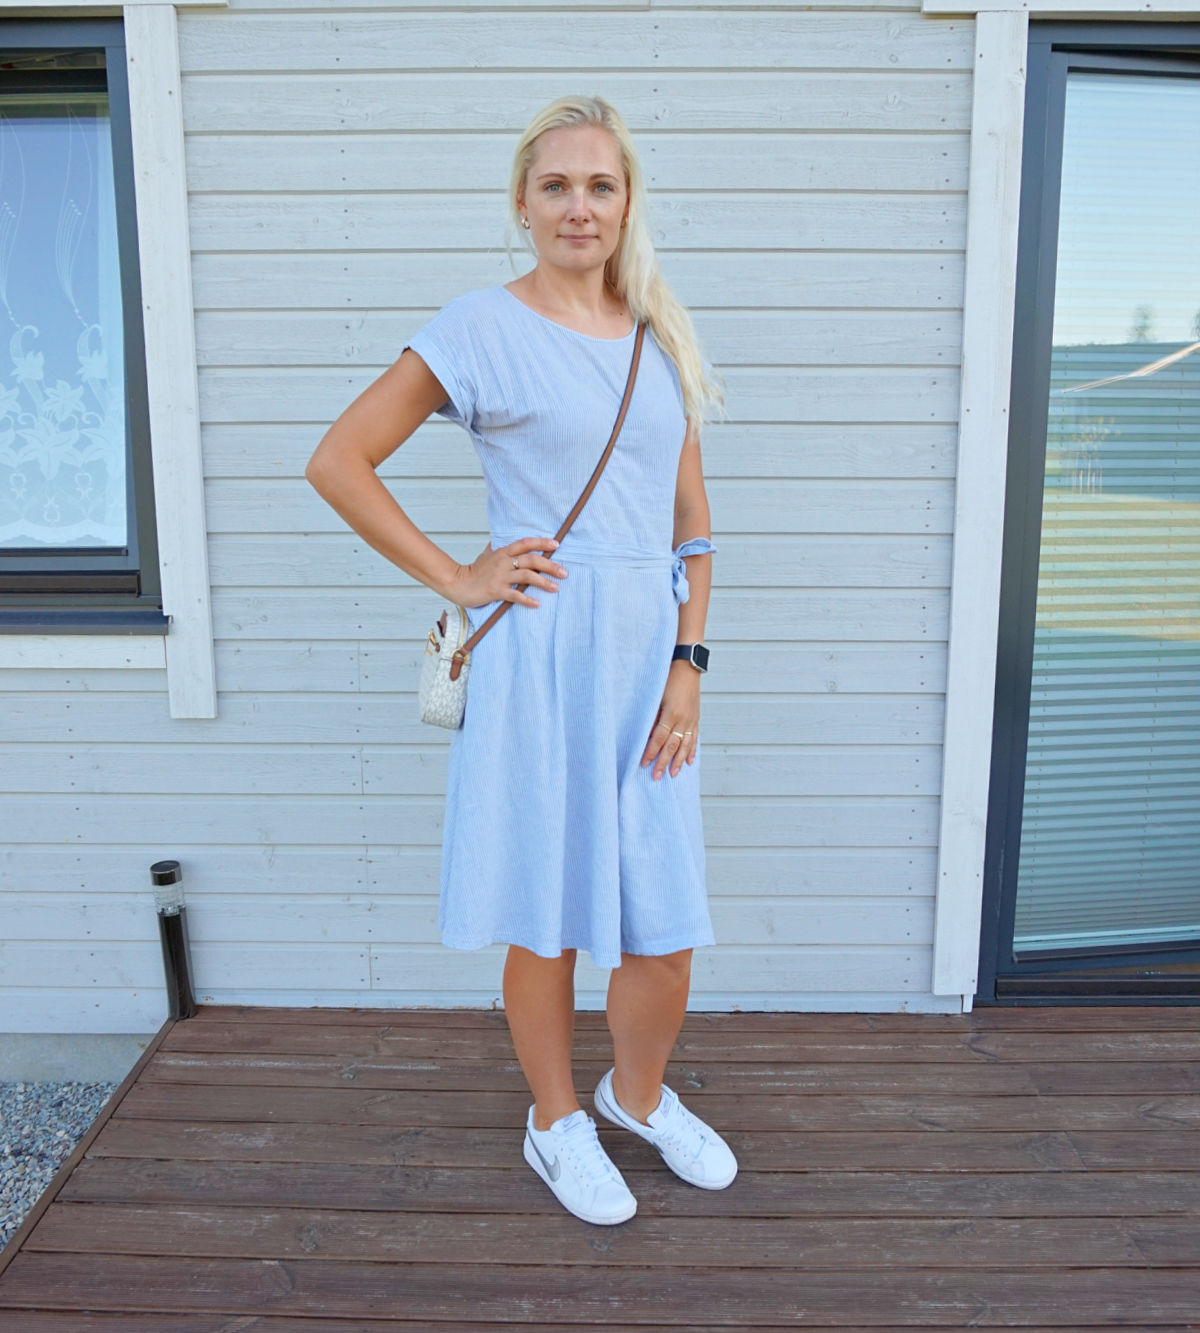 Simple striped a-line midi summer dress accessorized with white sneakers and crossbody bag.